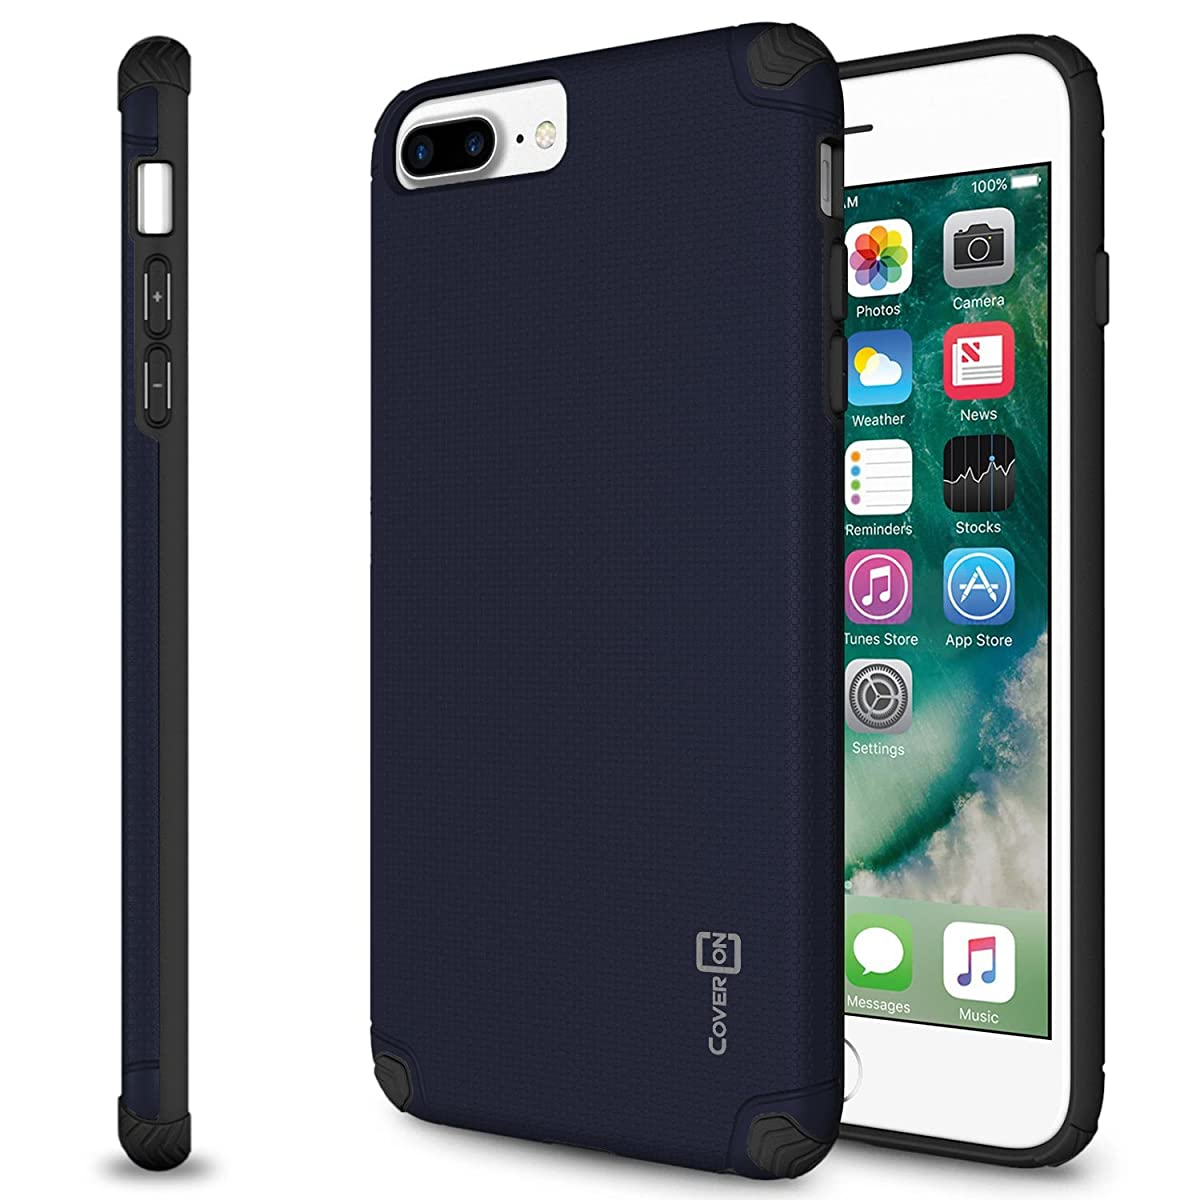 CoverON Bios Series Fit iPhone 8 Plus Slim Case, iPhone 7 Plus Slim Case, Minimalist Thin Protective Hard Phone Cover with Embedded Metal Plate for Magnetic Car Mounts - Navy Blue